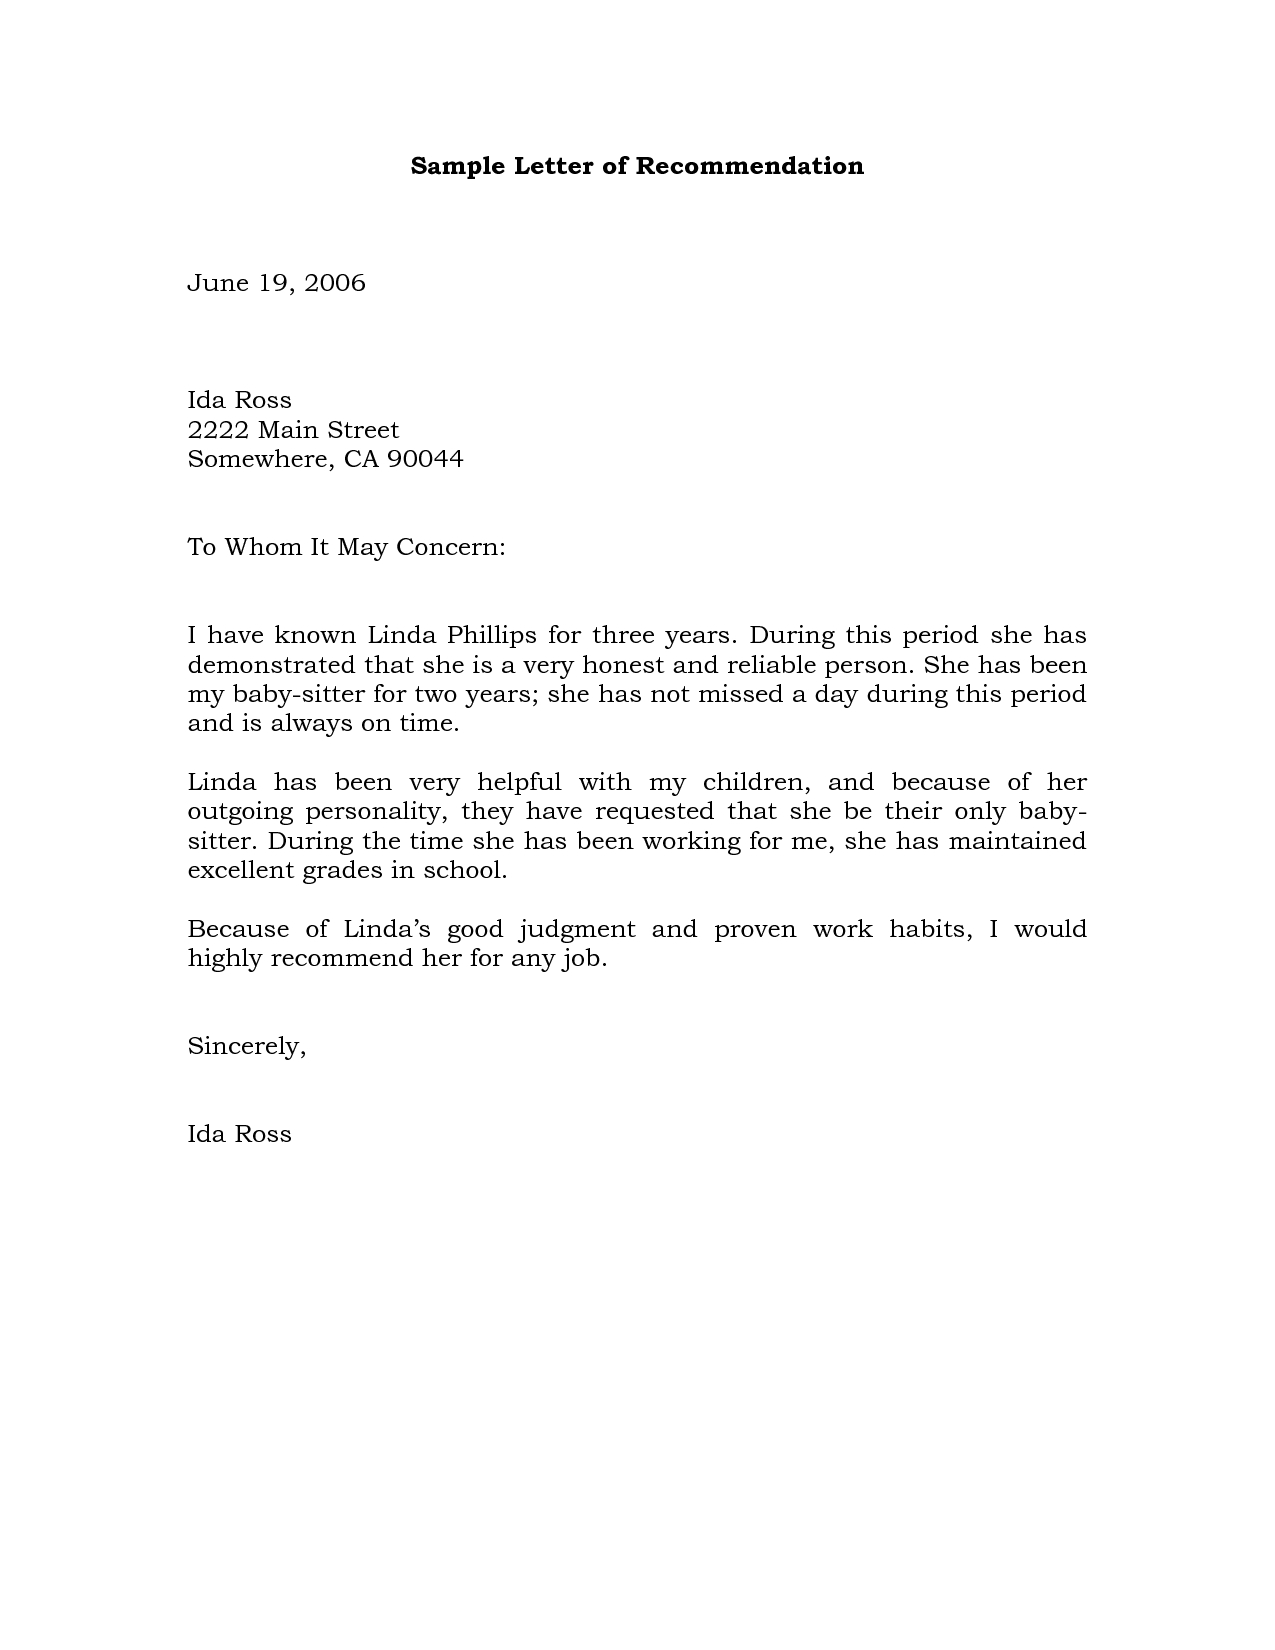 Write A Letter to Your Future Self Template - Sample Re Mendation Letter Example Projects to Try